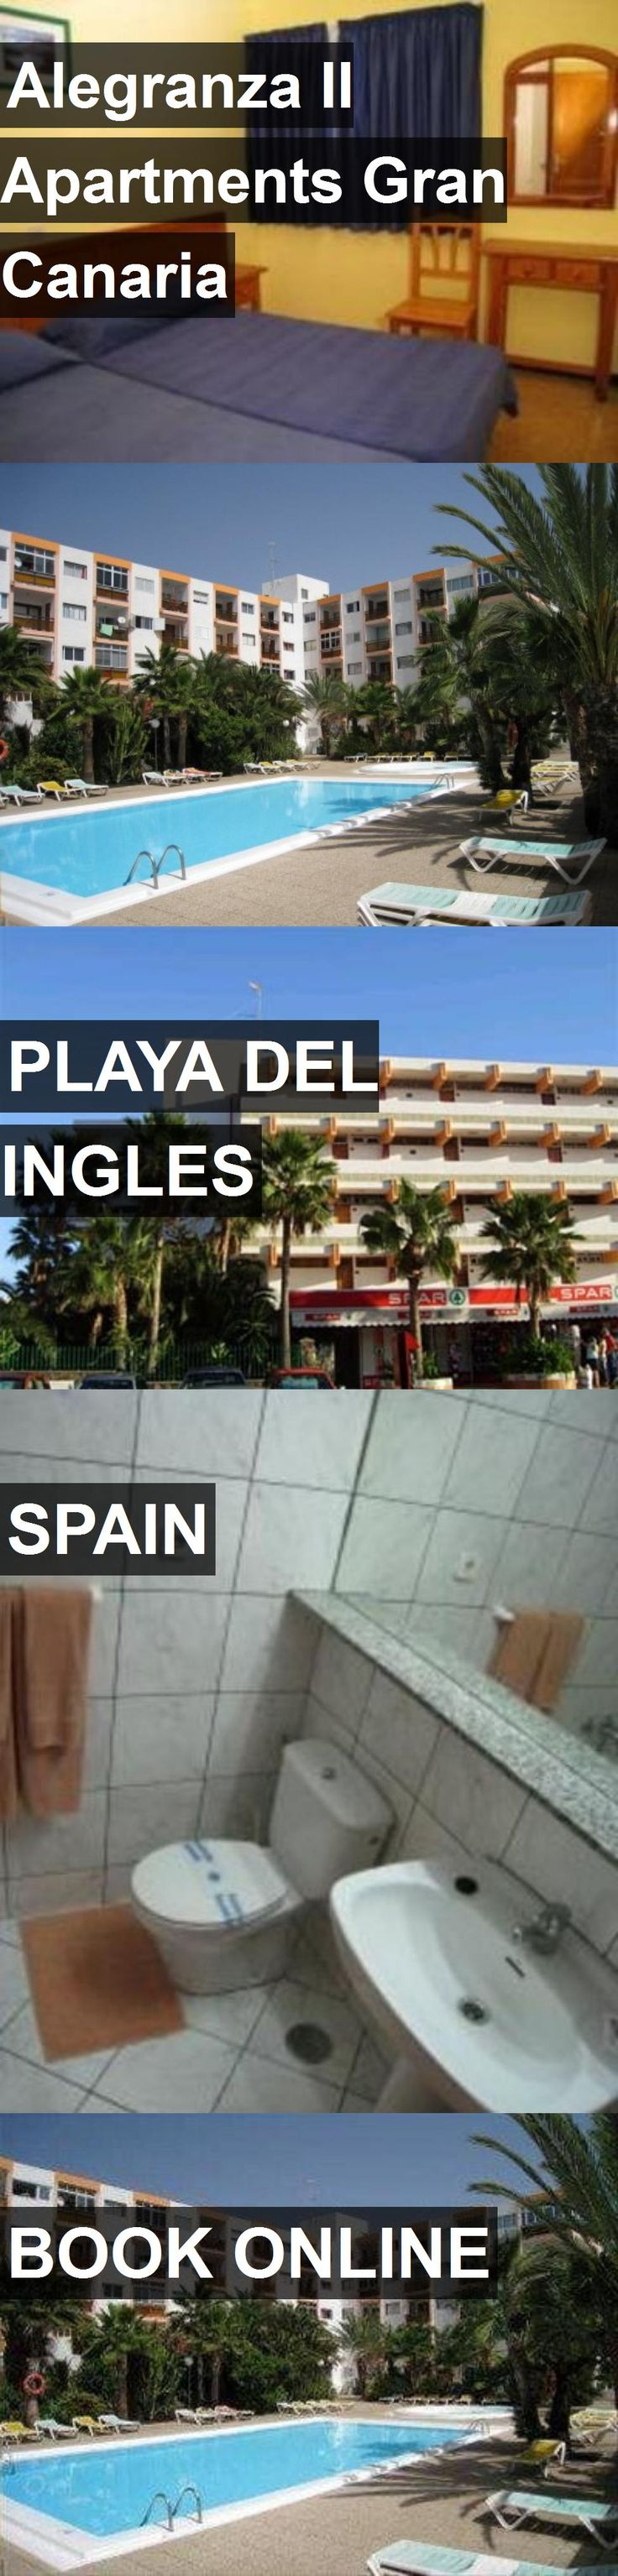 Hotel Alegranza II Apartments Gran Canaria in Playa del Ingles, Spain. For more information, photos, reviews and best prices please follow the link. #Spain #PlayadelIngles #AlegranzaIIApartmentsGranCanaria #hotel #travel #vacation